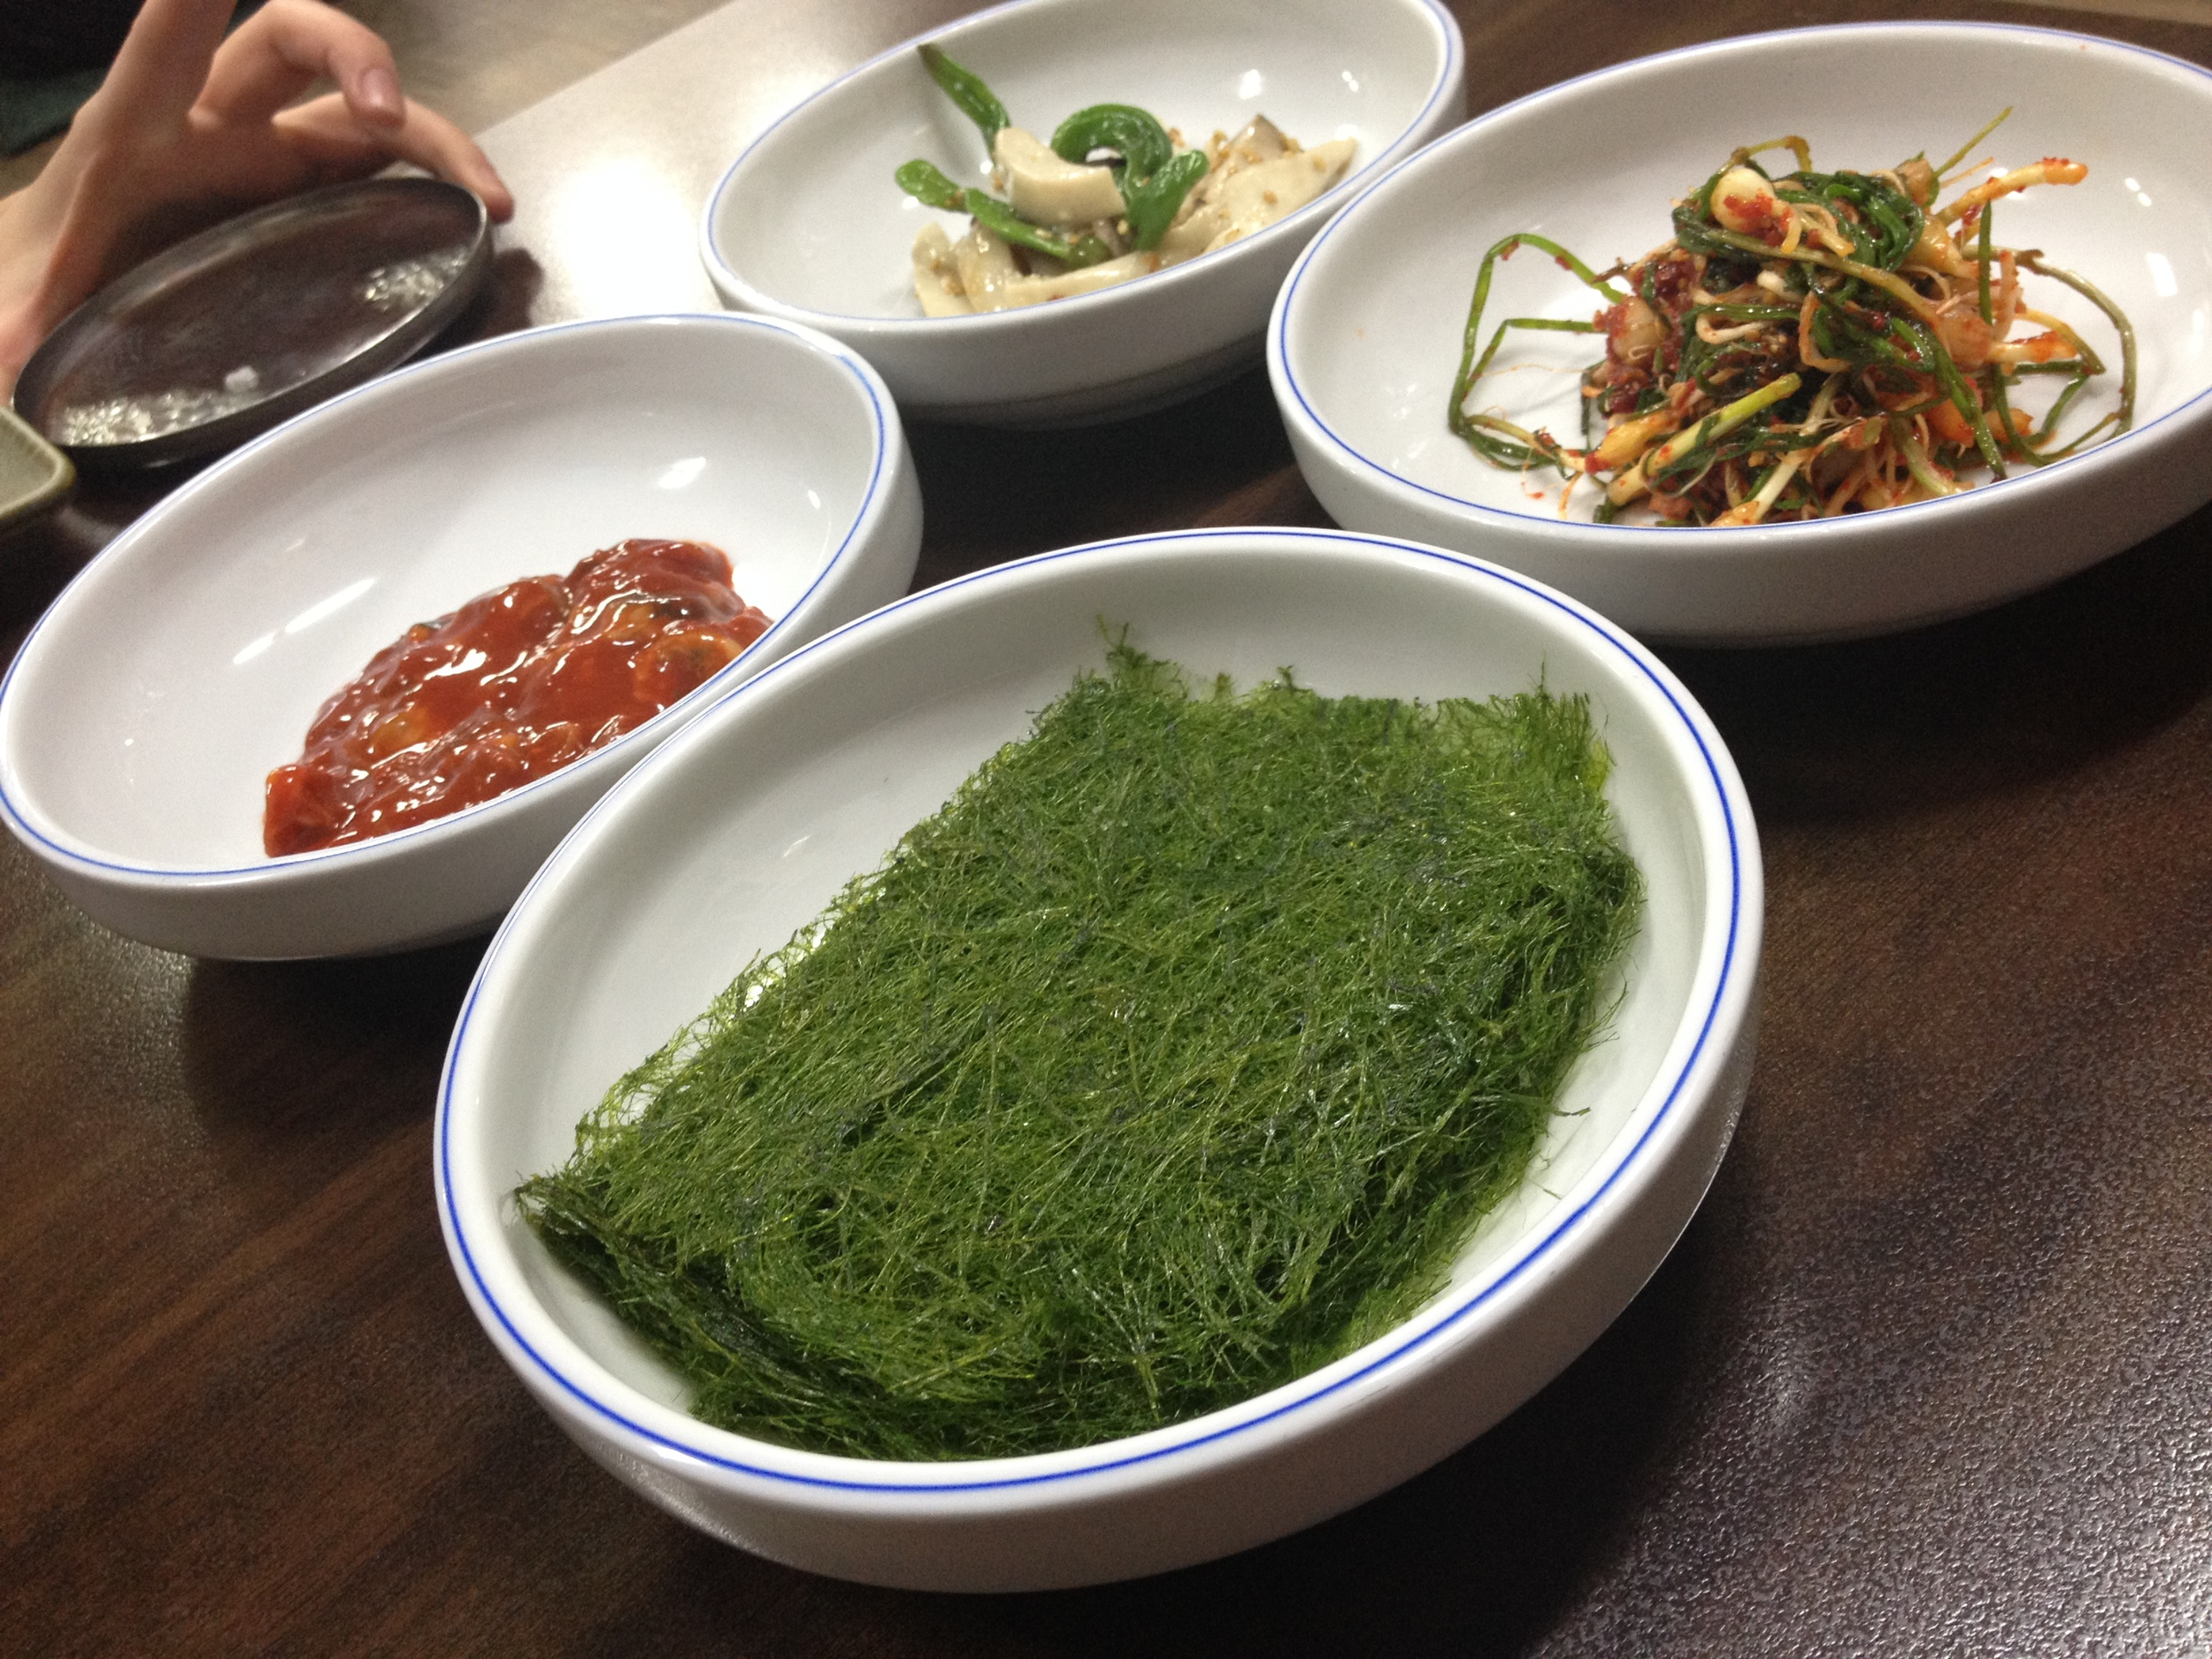 Anotherfeature of the meal at this place is their special seaweed. It is a version of 파래김 (Pa-reh-gim), which is a type of seaweed prepared in a certain way.